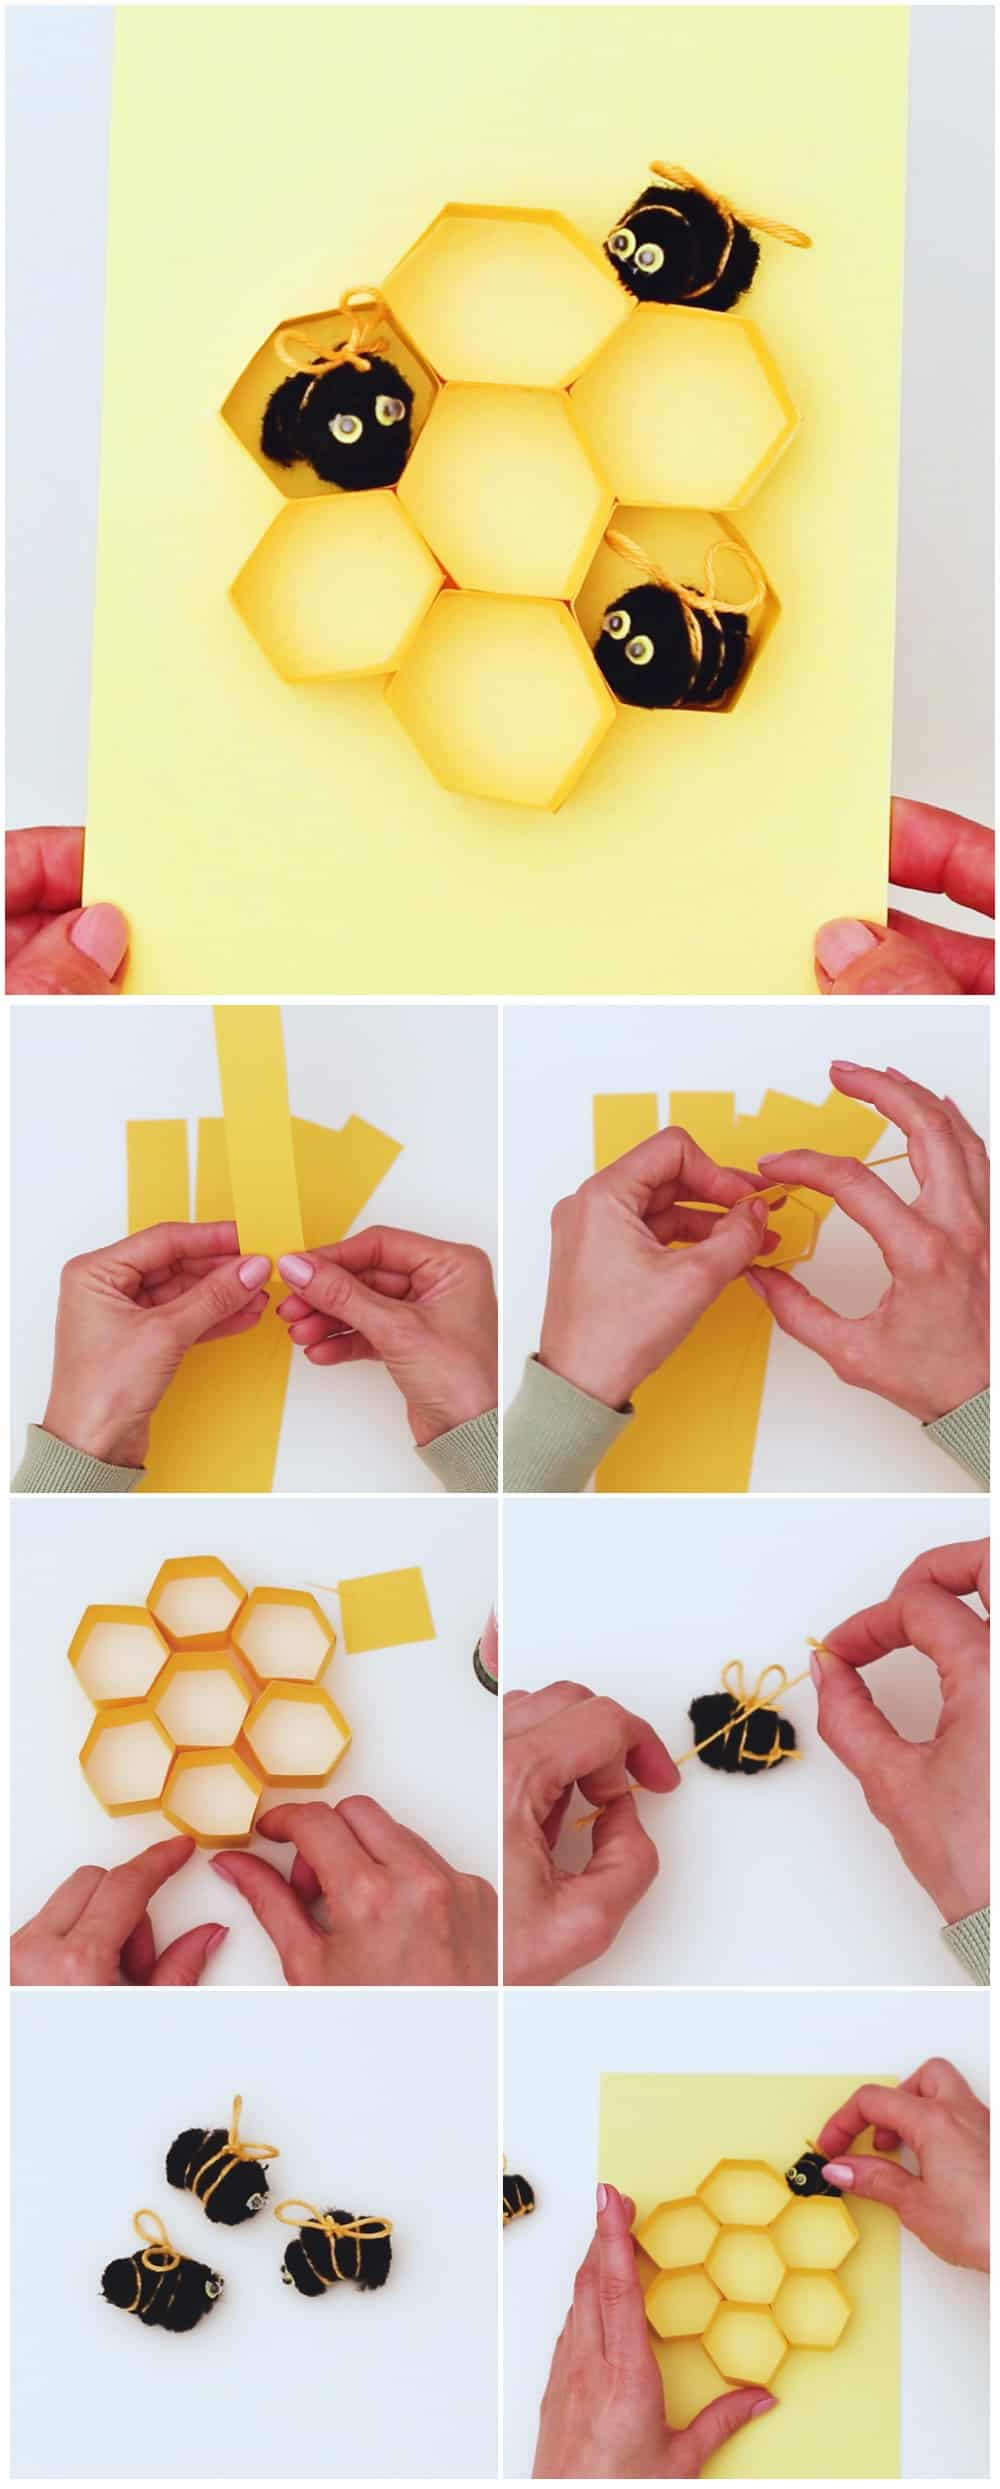 process to make a paper bee pom pom craft